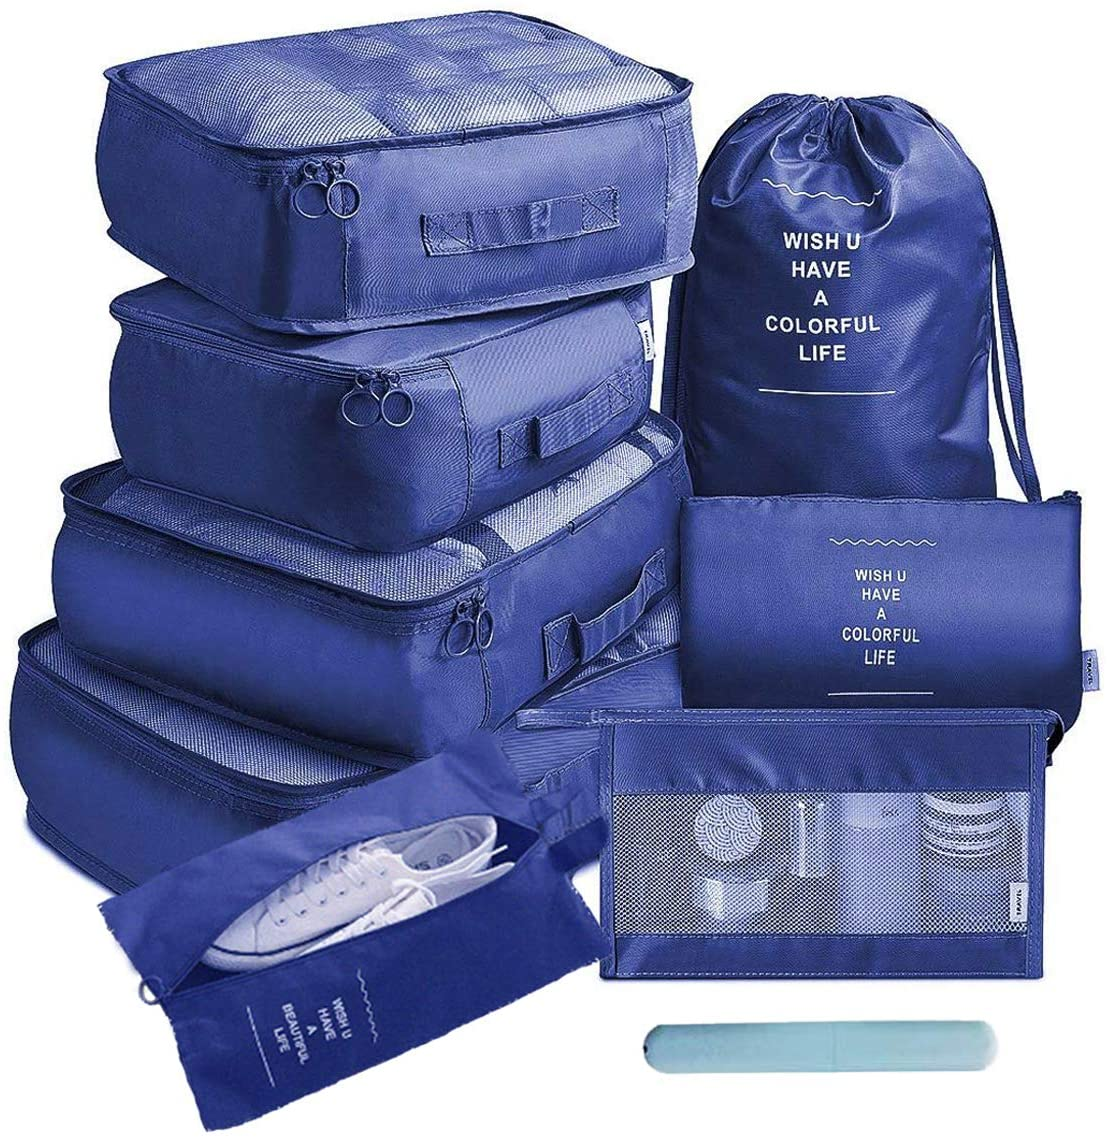 OrgaWise Packing Cubes for Travel Organizer 9 Pcs Luggage Suitcase Waterproof Organizers - 4 Travel Cubes + 1 Pouches + 1 Shoe Bag+1 Cosmetic bag+1 Drawsting Bag+1 Toothbrush Box (9 Pcs Navy Blue)